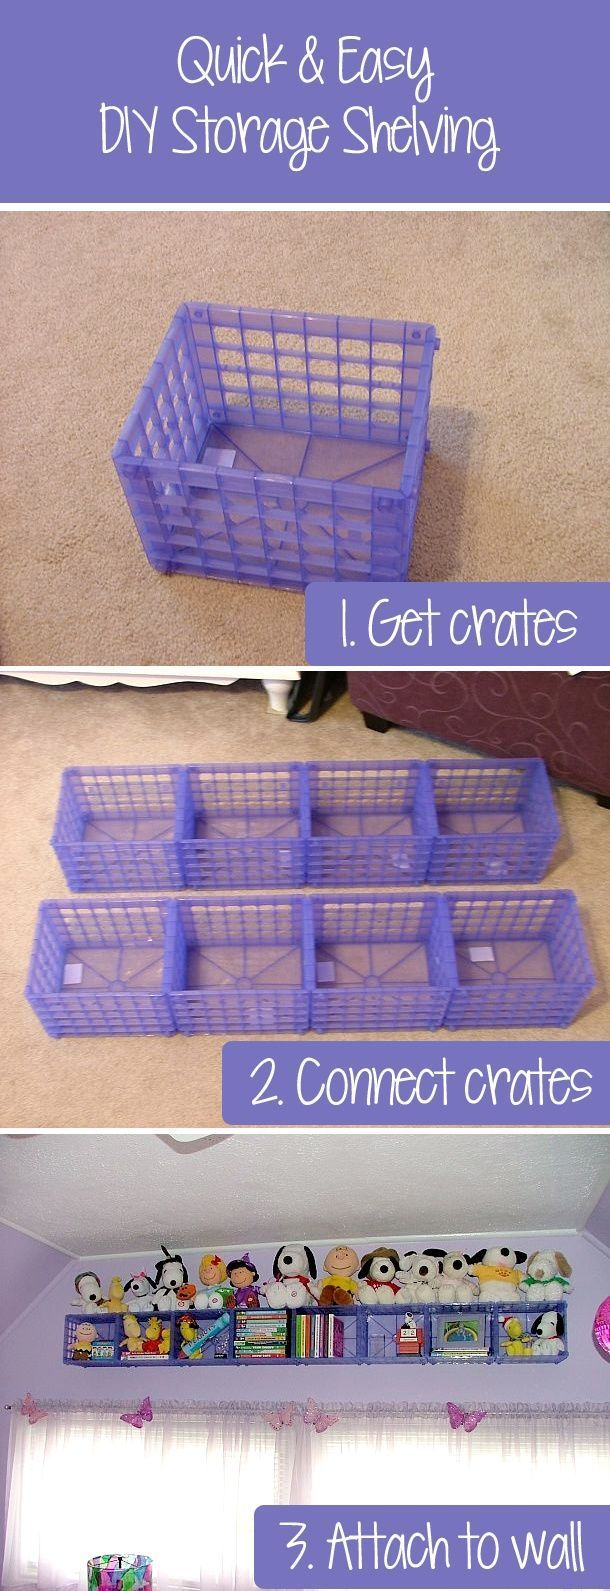 A cheap, easy, #DIY solution for extra storage and shelf space in the kids' bedroom or playroom. #organized Organizing on a budget